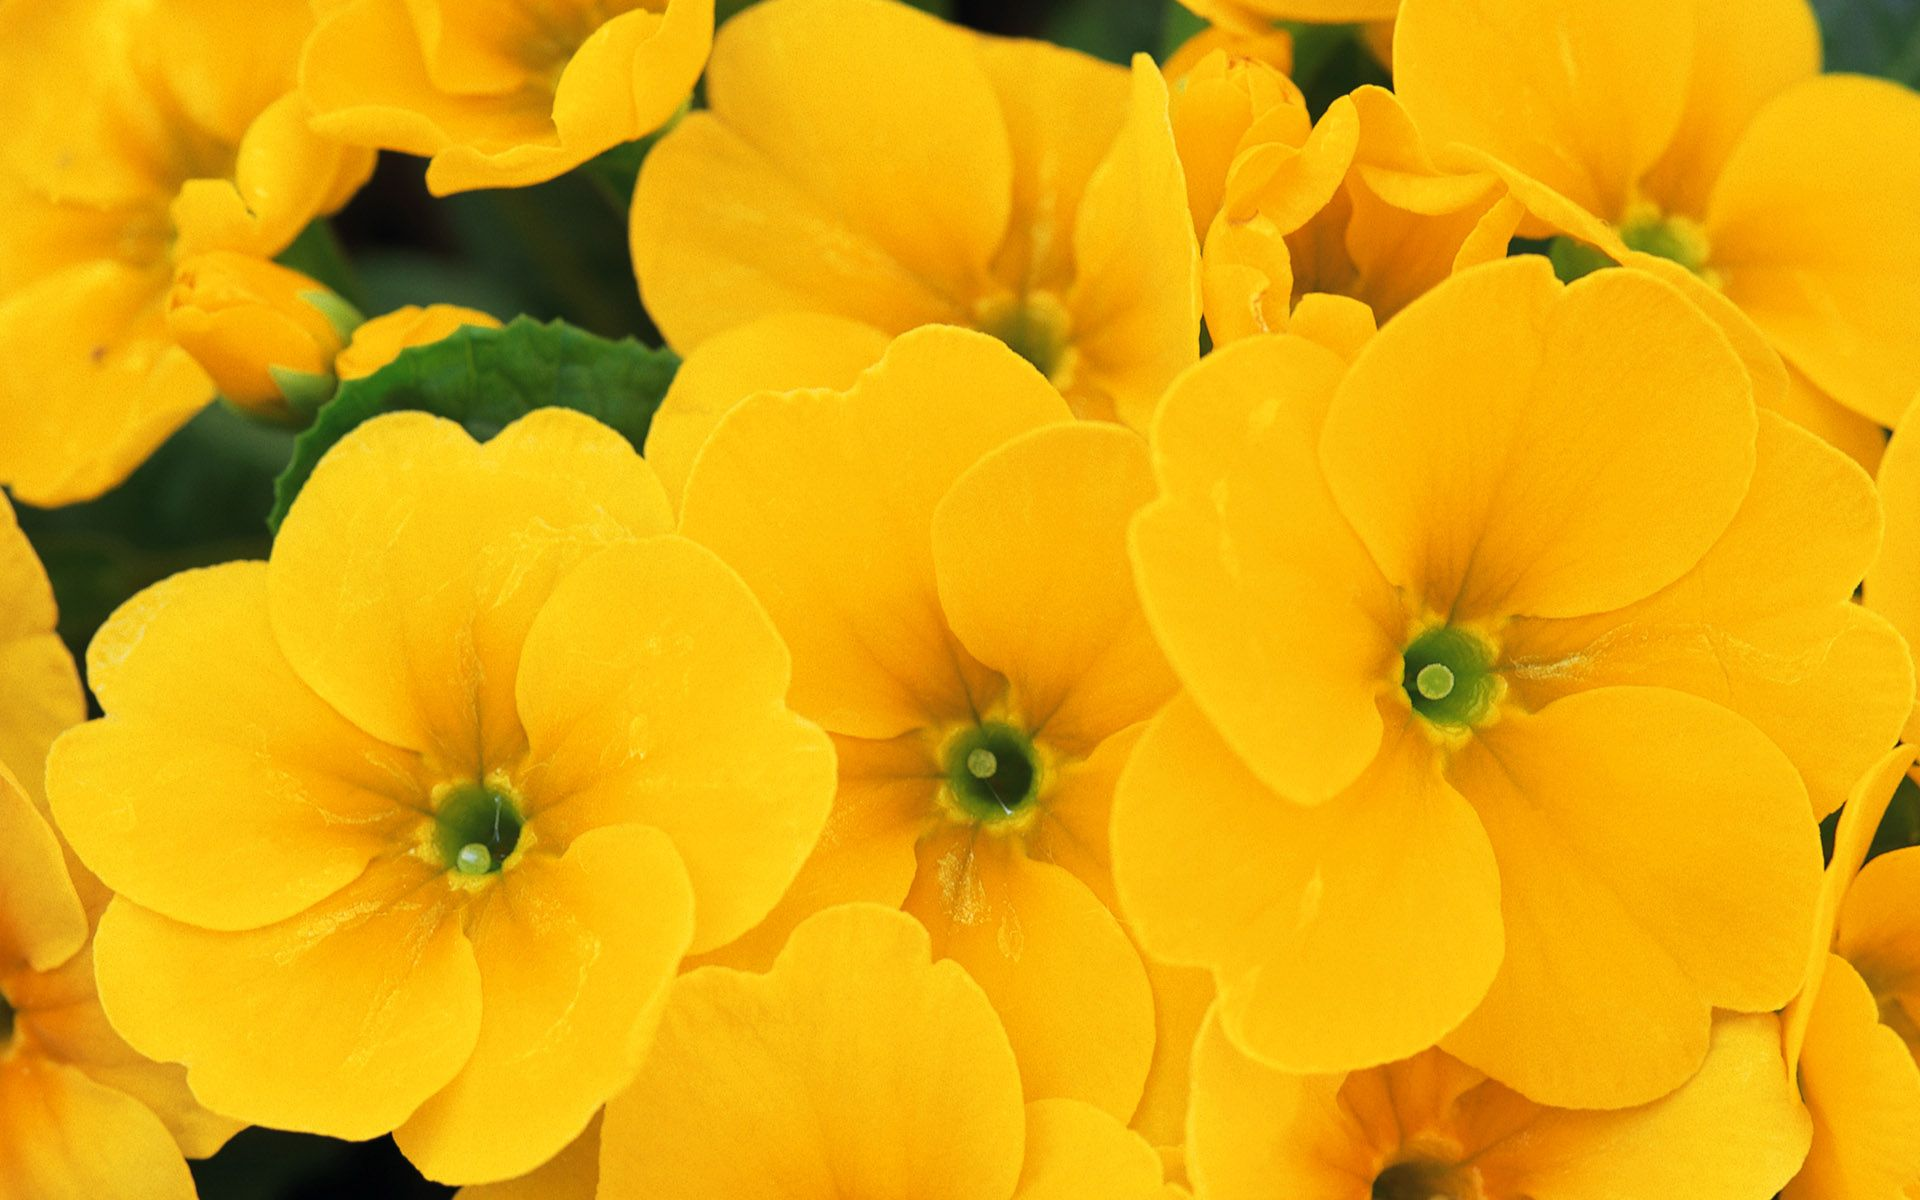 yellow flowers wallpaper #649486, flowers Photography Wallpapers